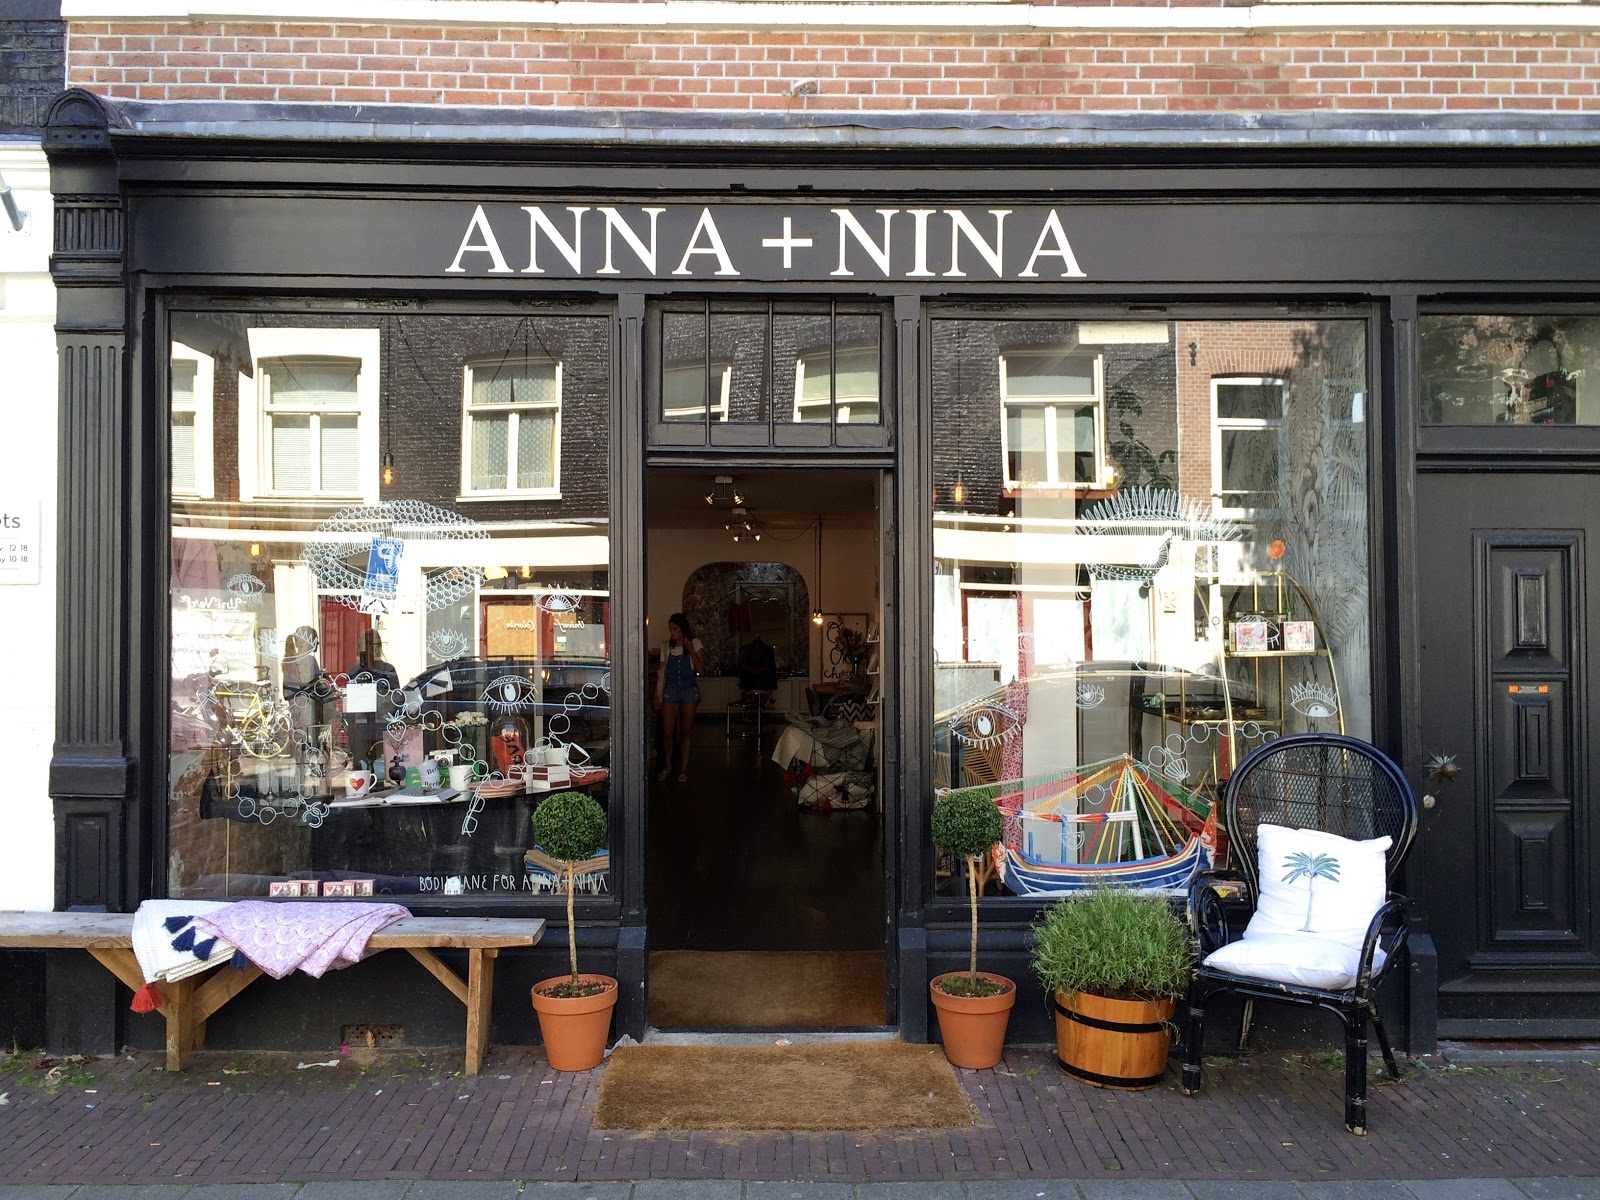 Anna + Nina - shopping for gifts